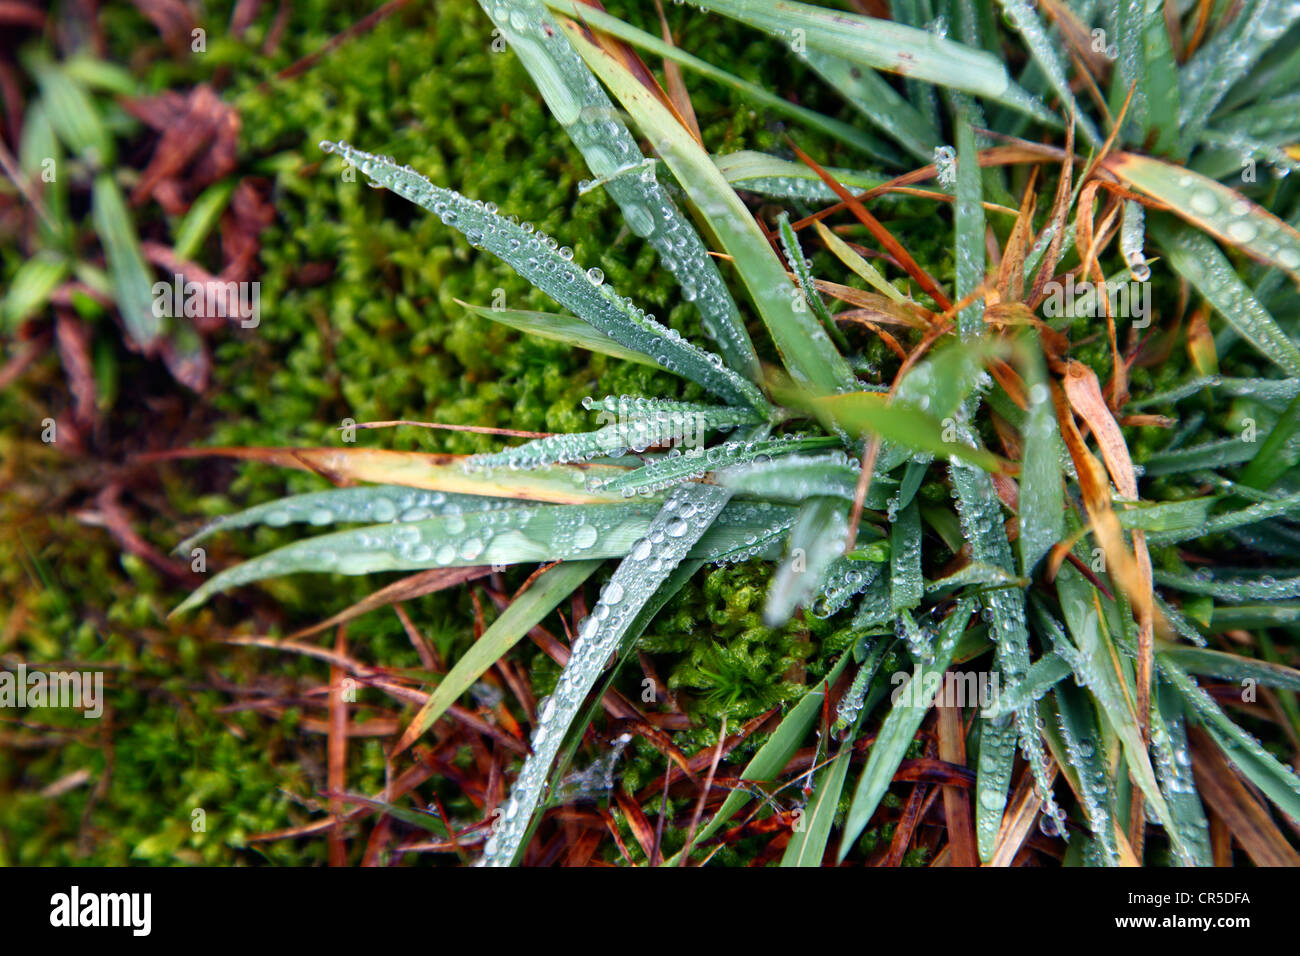 Raindrops on dune grass,  Spiekeroog, Lower Saxony, Germany, Europe. - Stock Image